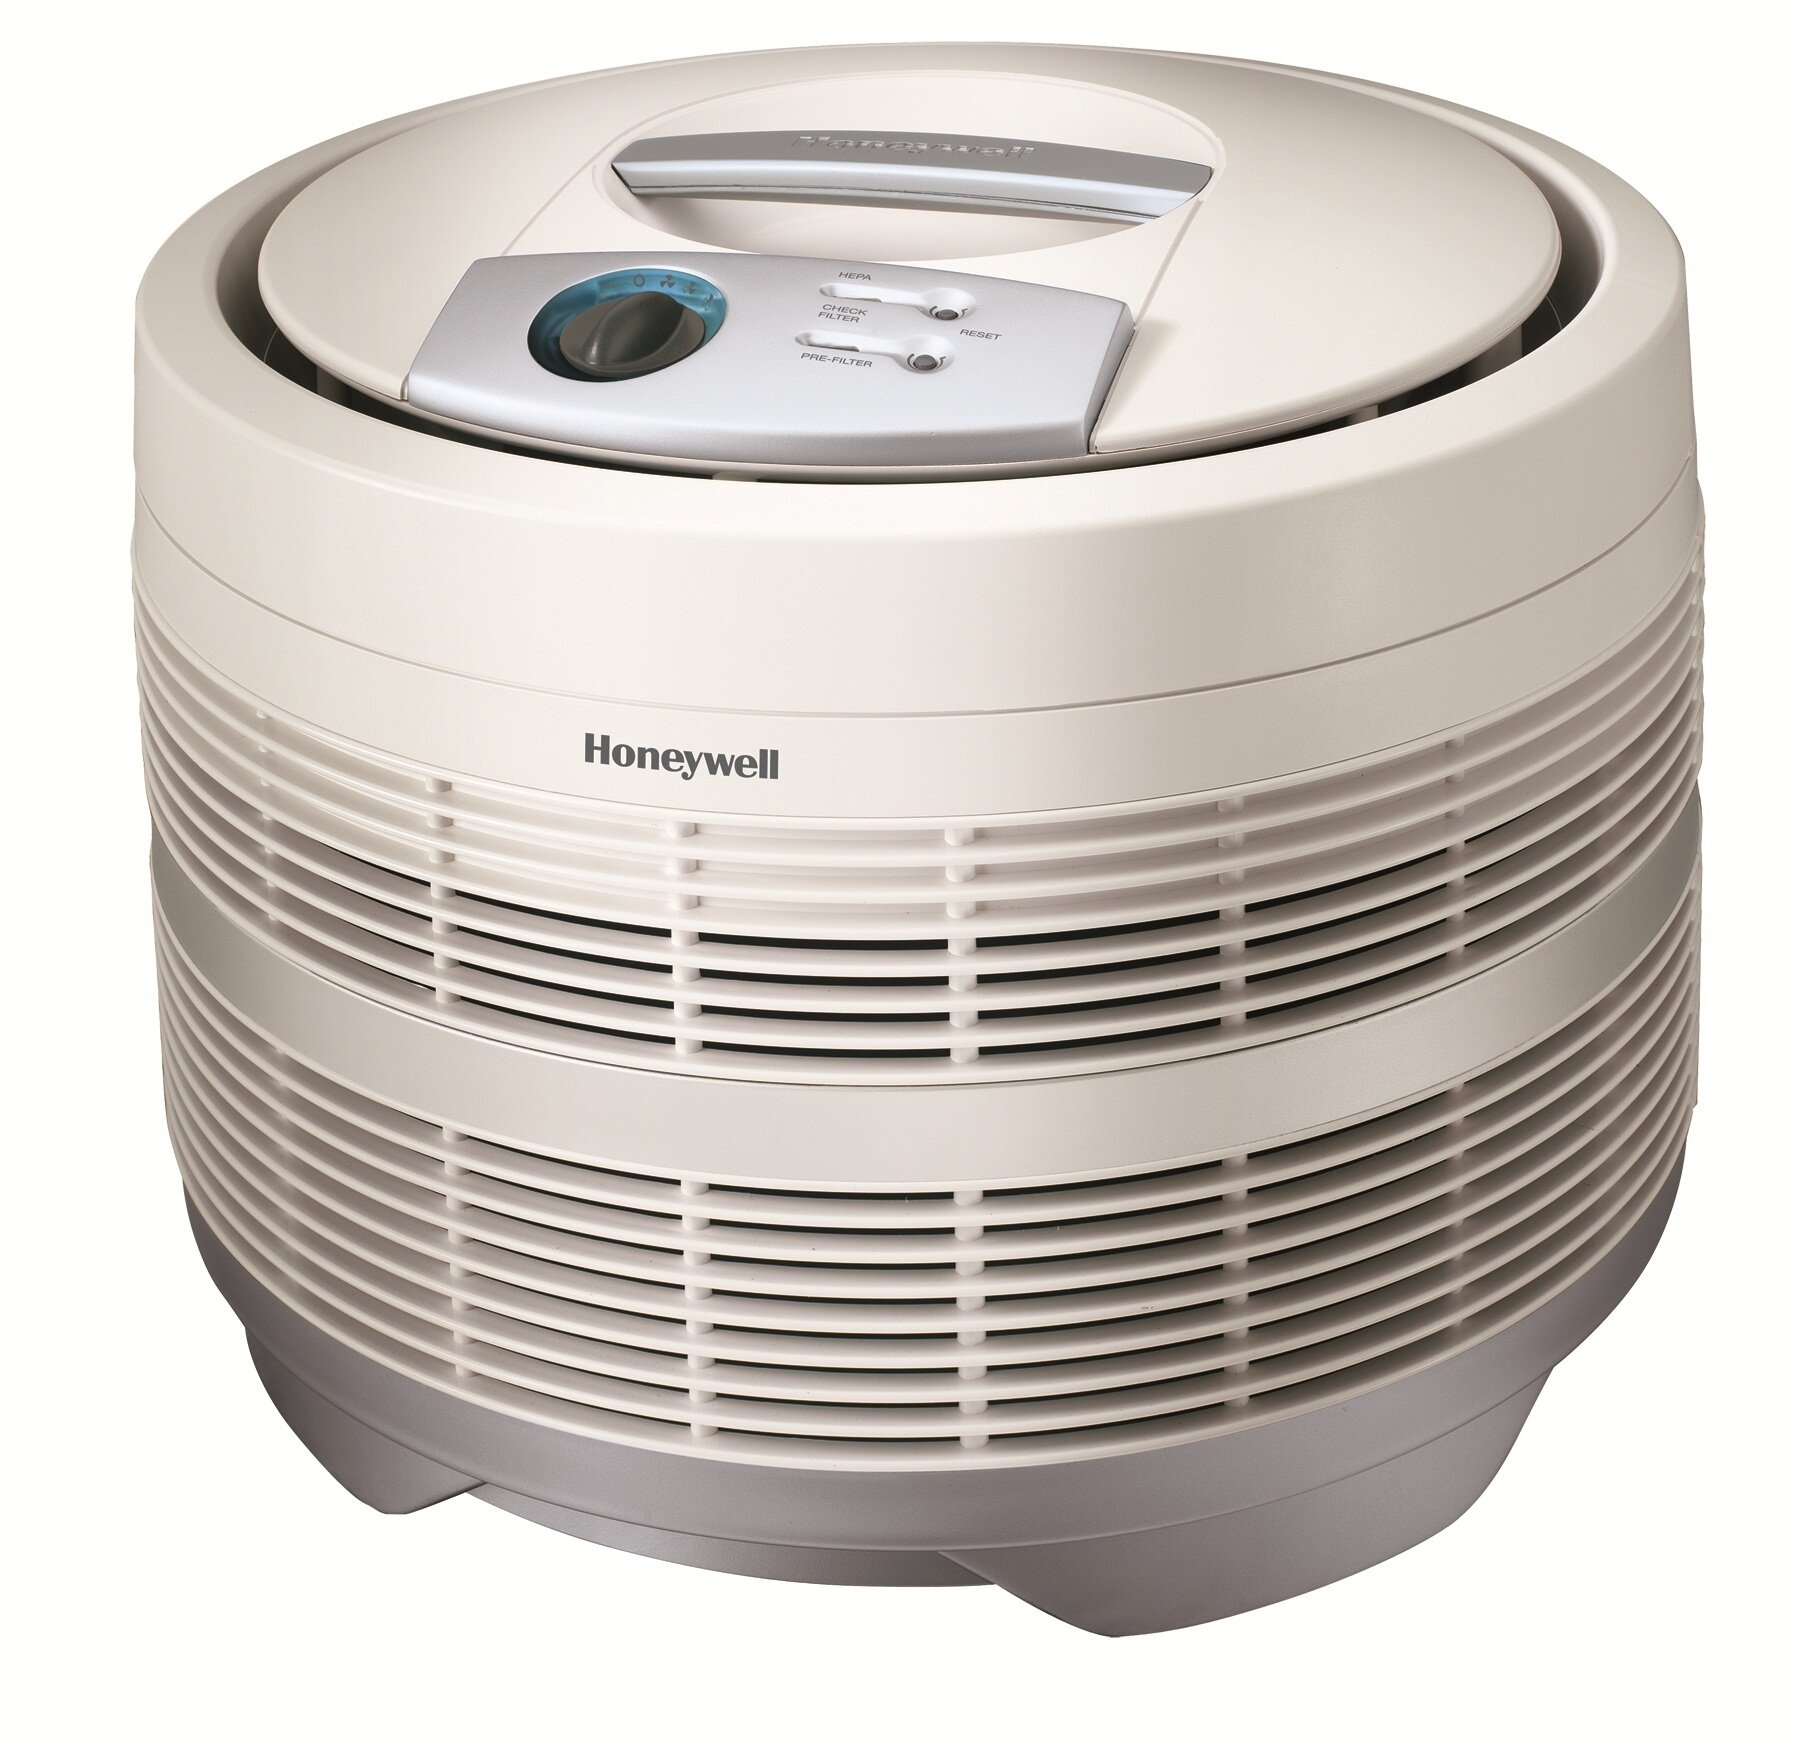 Honeywell room true hepa air purifier 90271501504 ebay for Bedroom air purifier